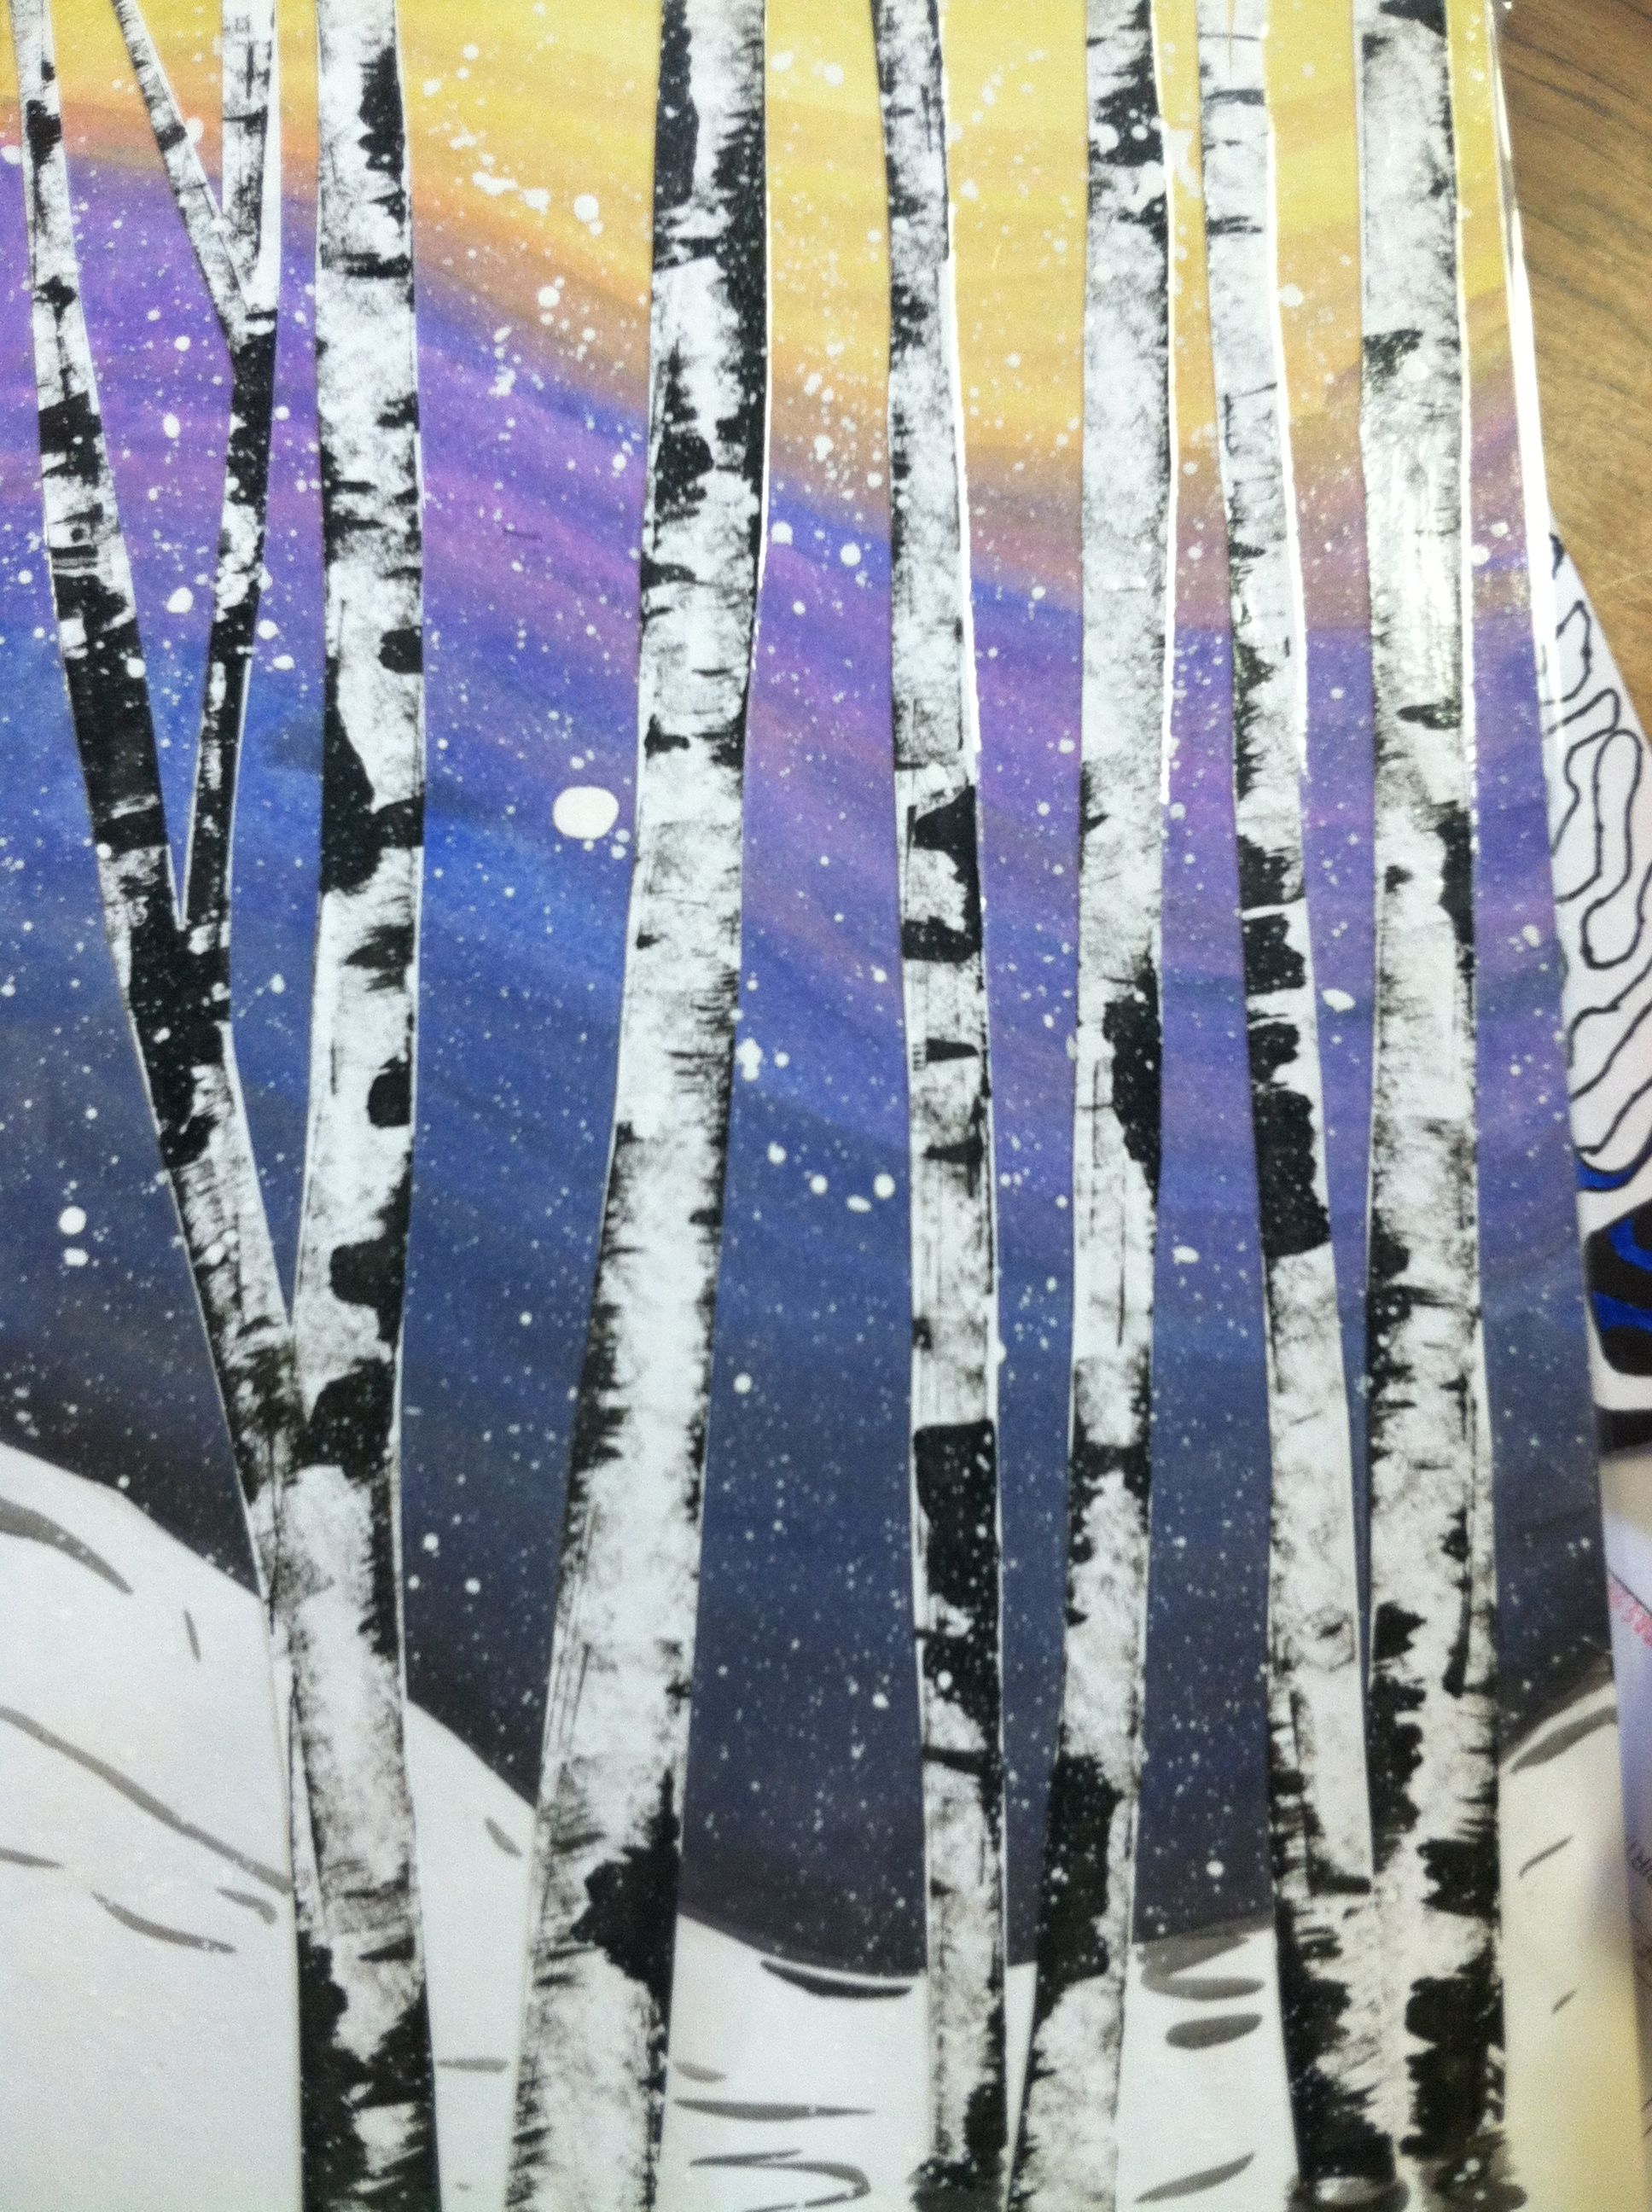 Watercolor Birch Trees School Art Projects Pastel Art Winter